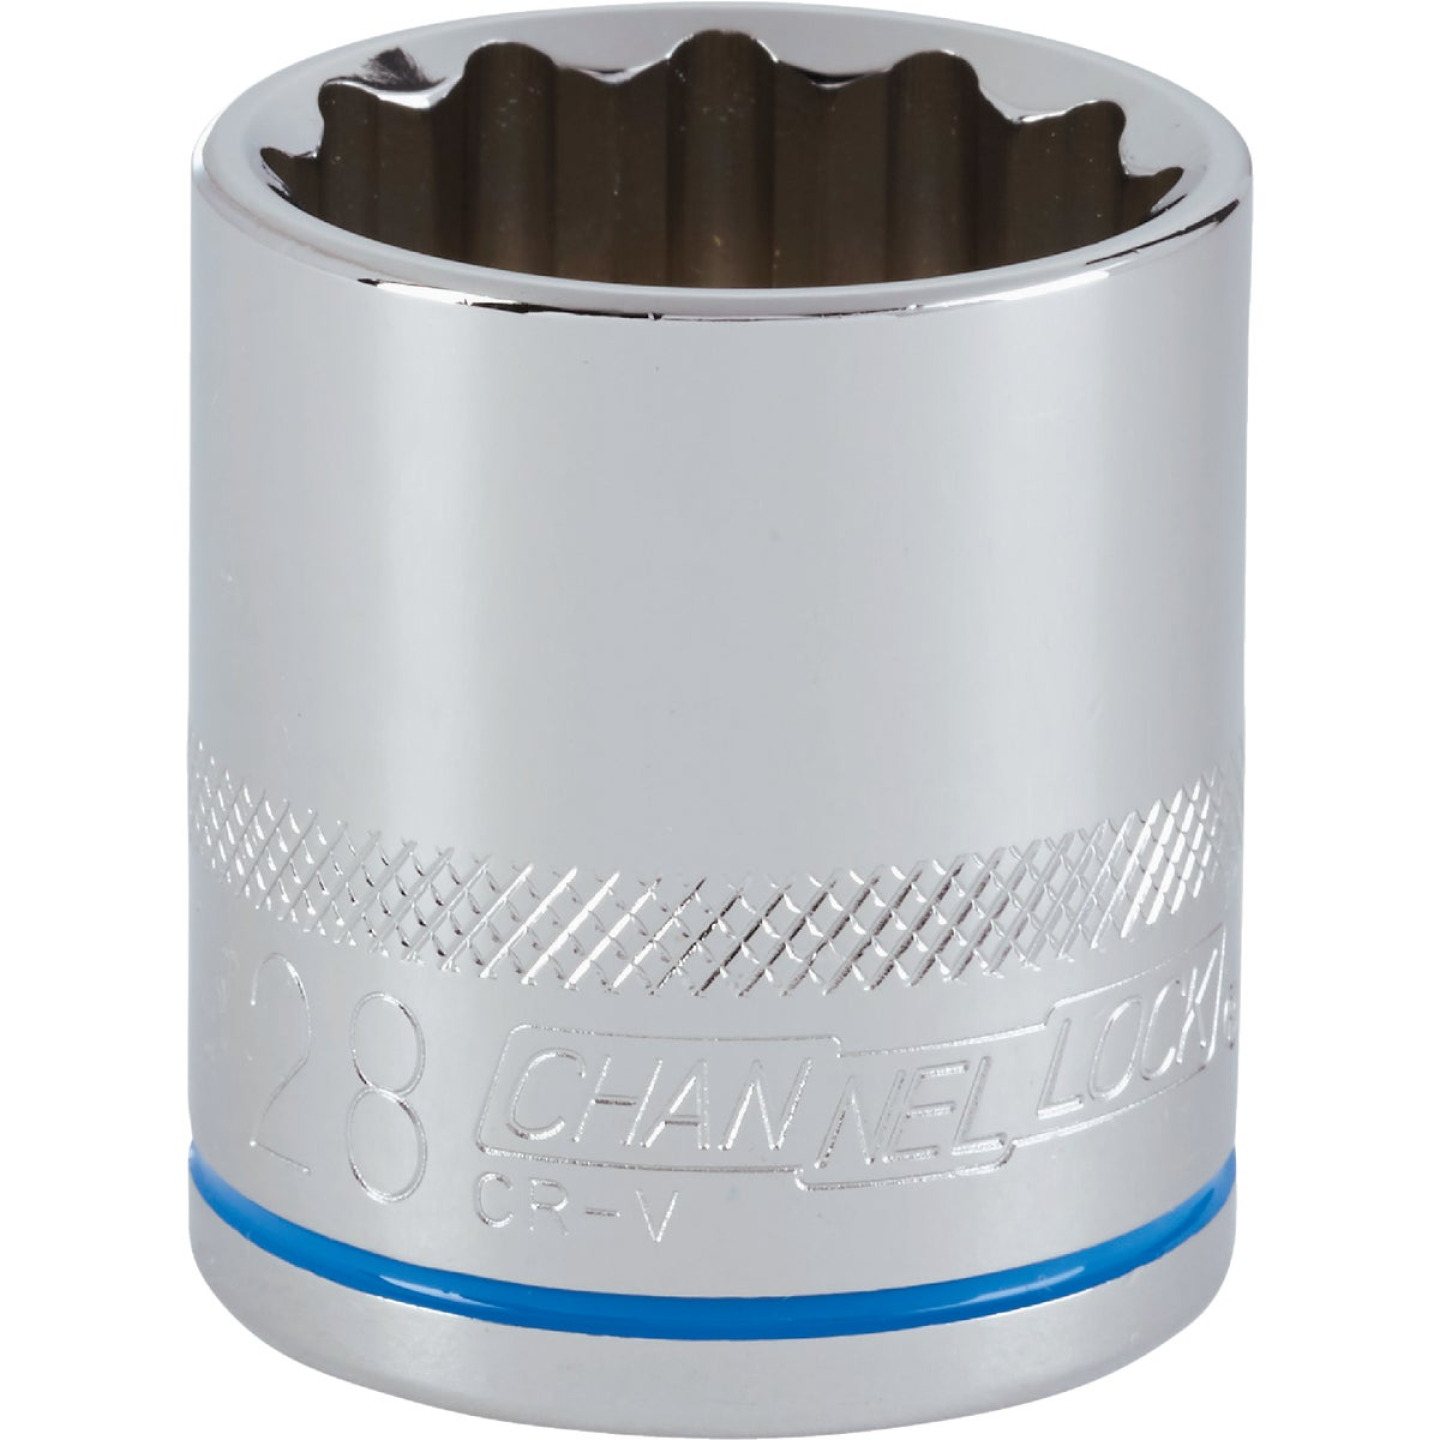 Channellock 1/2 In. Drive 28 mm 12-Point Shallow Metric Socket Image 1